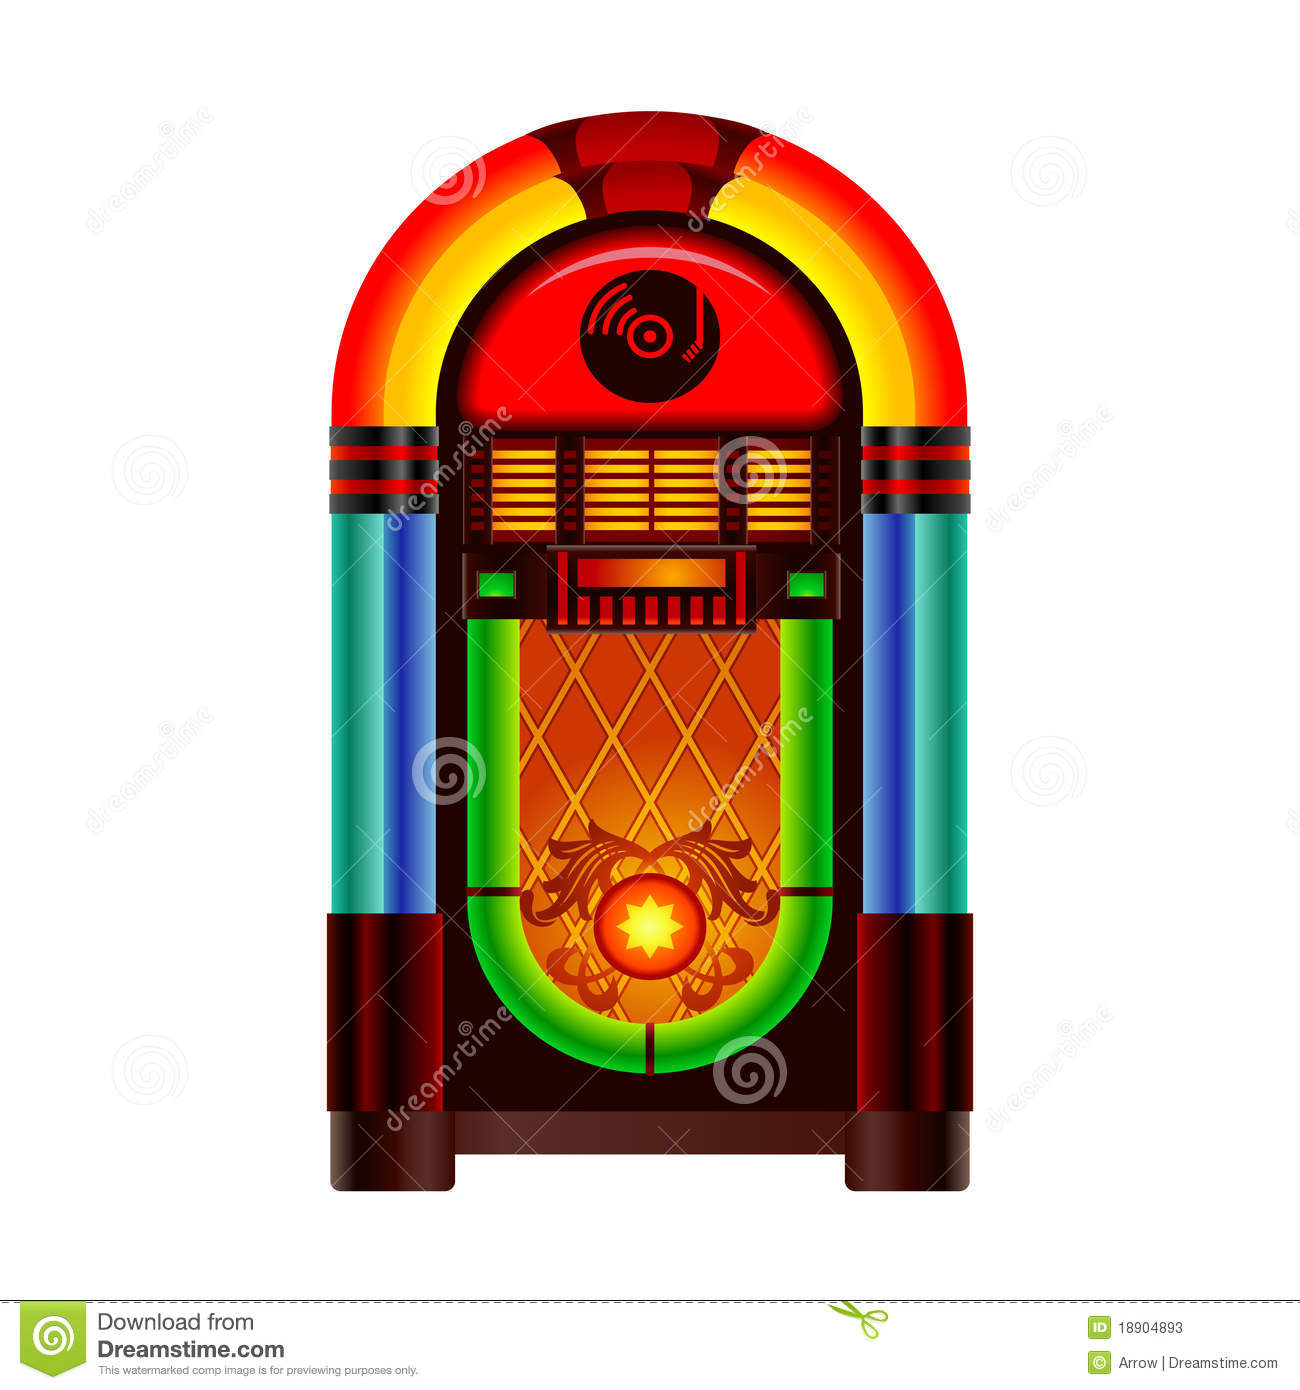 ... clipart-jukebox-stock-illustrations-vectors-clipart-oPH2HM-clipart.jpg